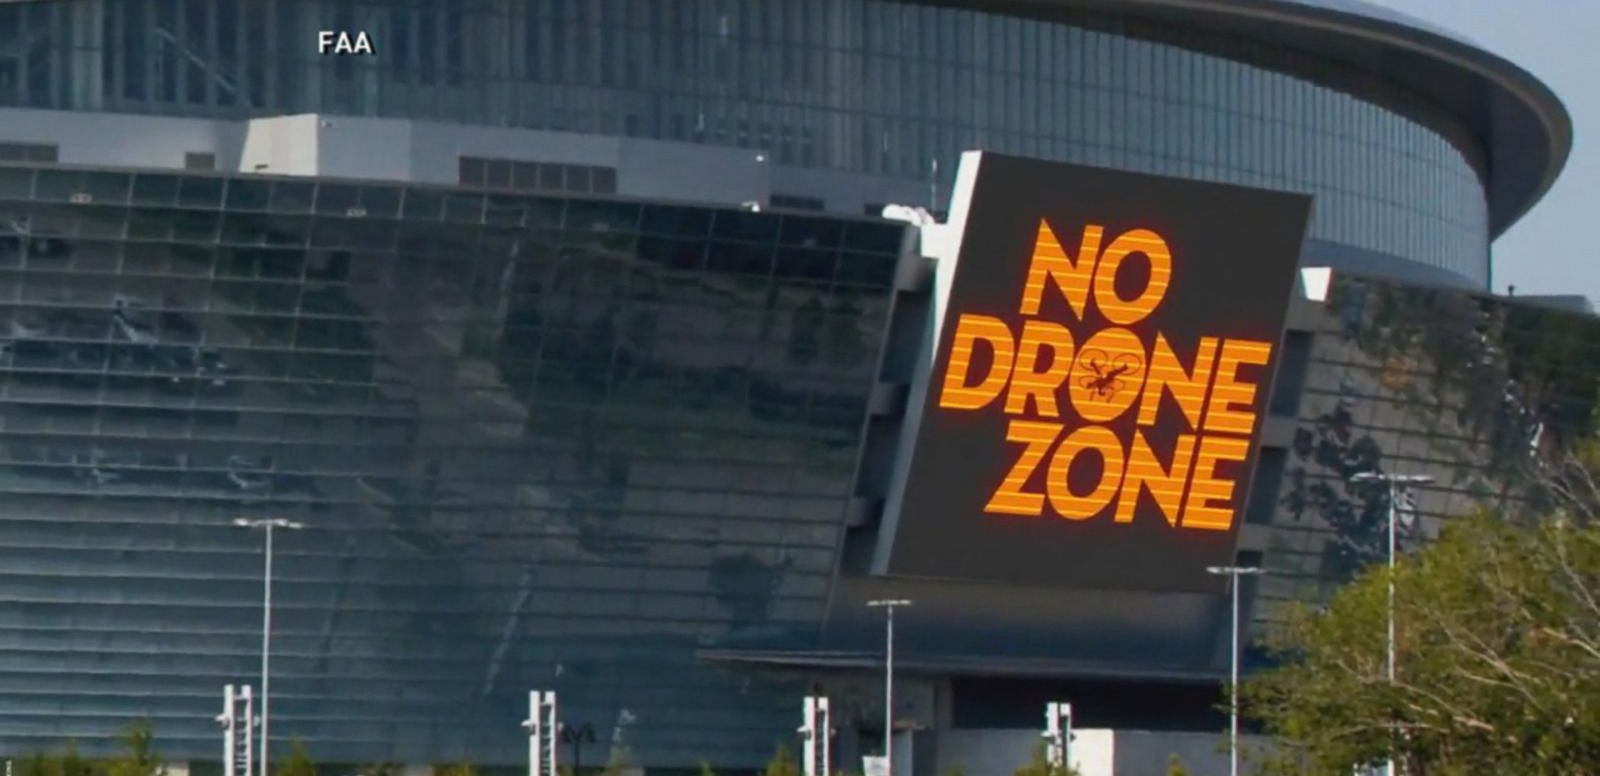 VIDEO: Instant Index: Feds Say Super Bowl is a 'No Drone Zone'